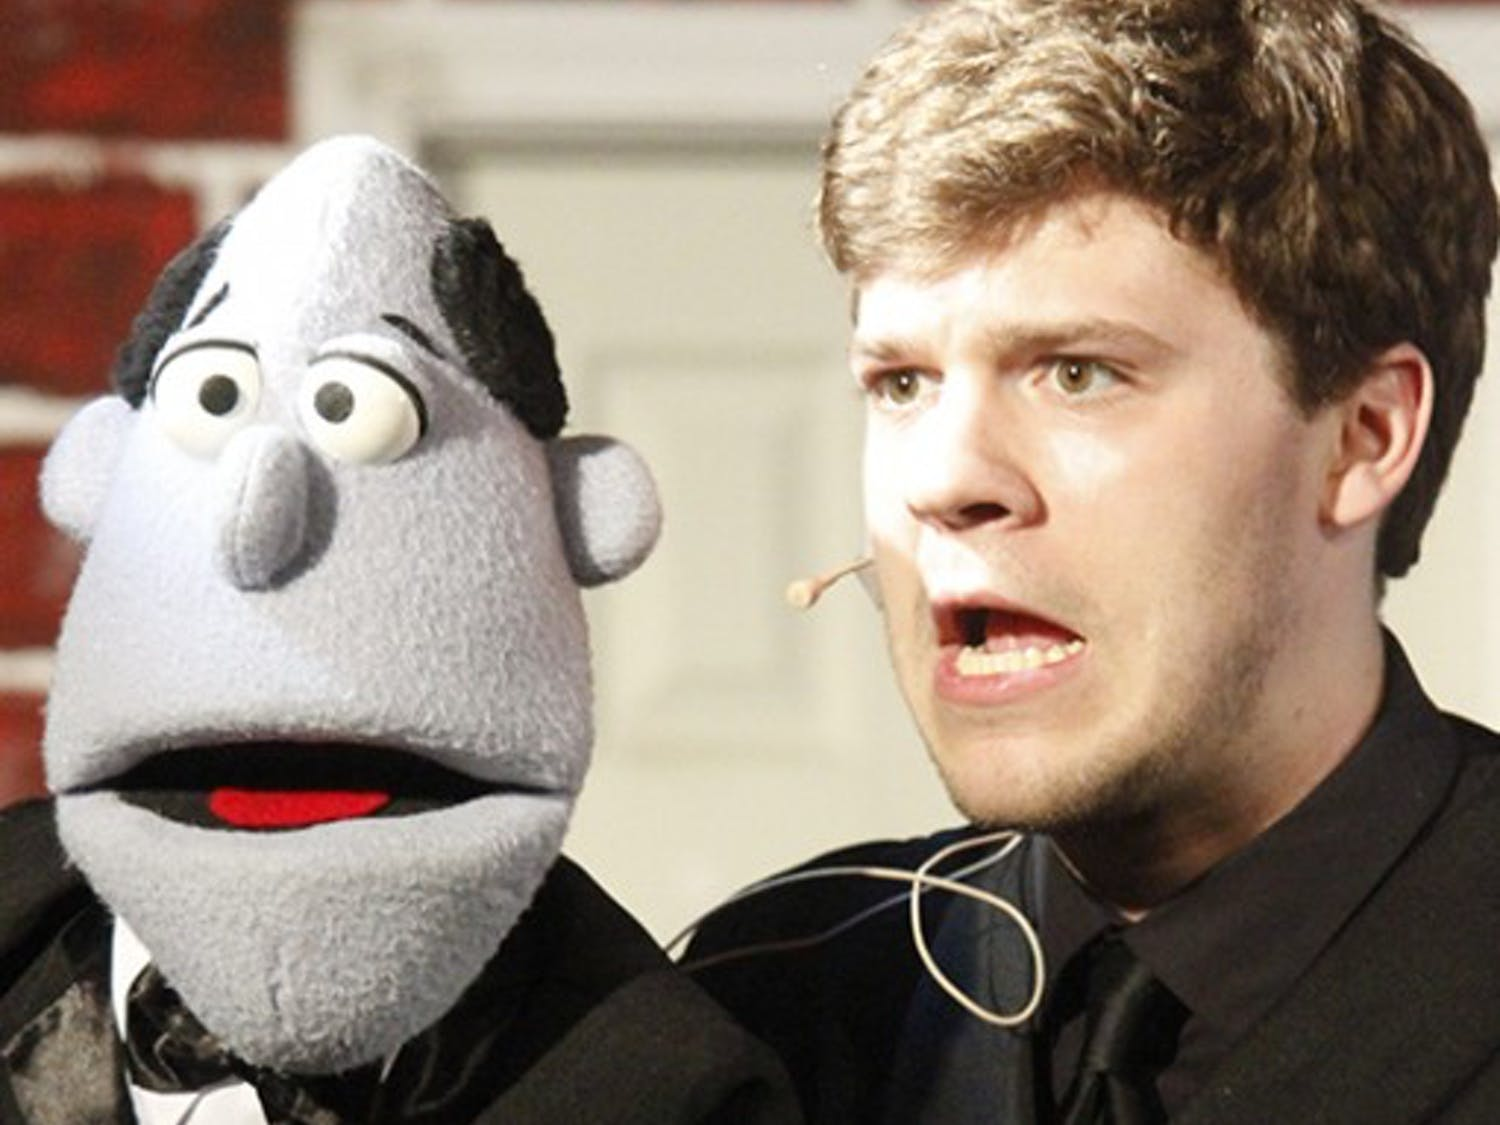 Student performer Will Hawkins at a dress rehearsal for Pauper Player's production of Avenue Q. The rehearsal took place at the Arts Center in Carrboro, Wednesday the 2nd of April.